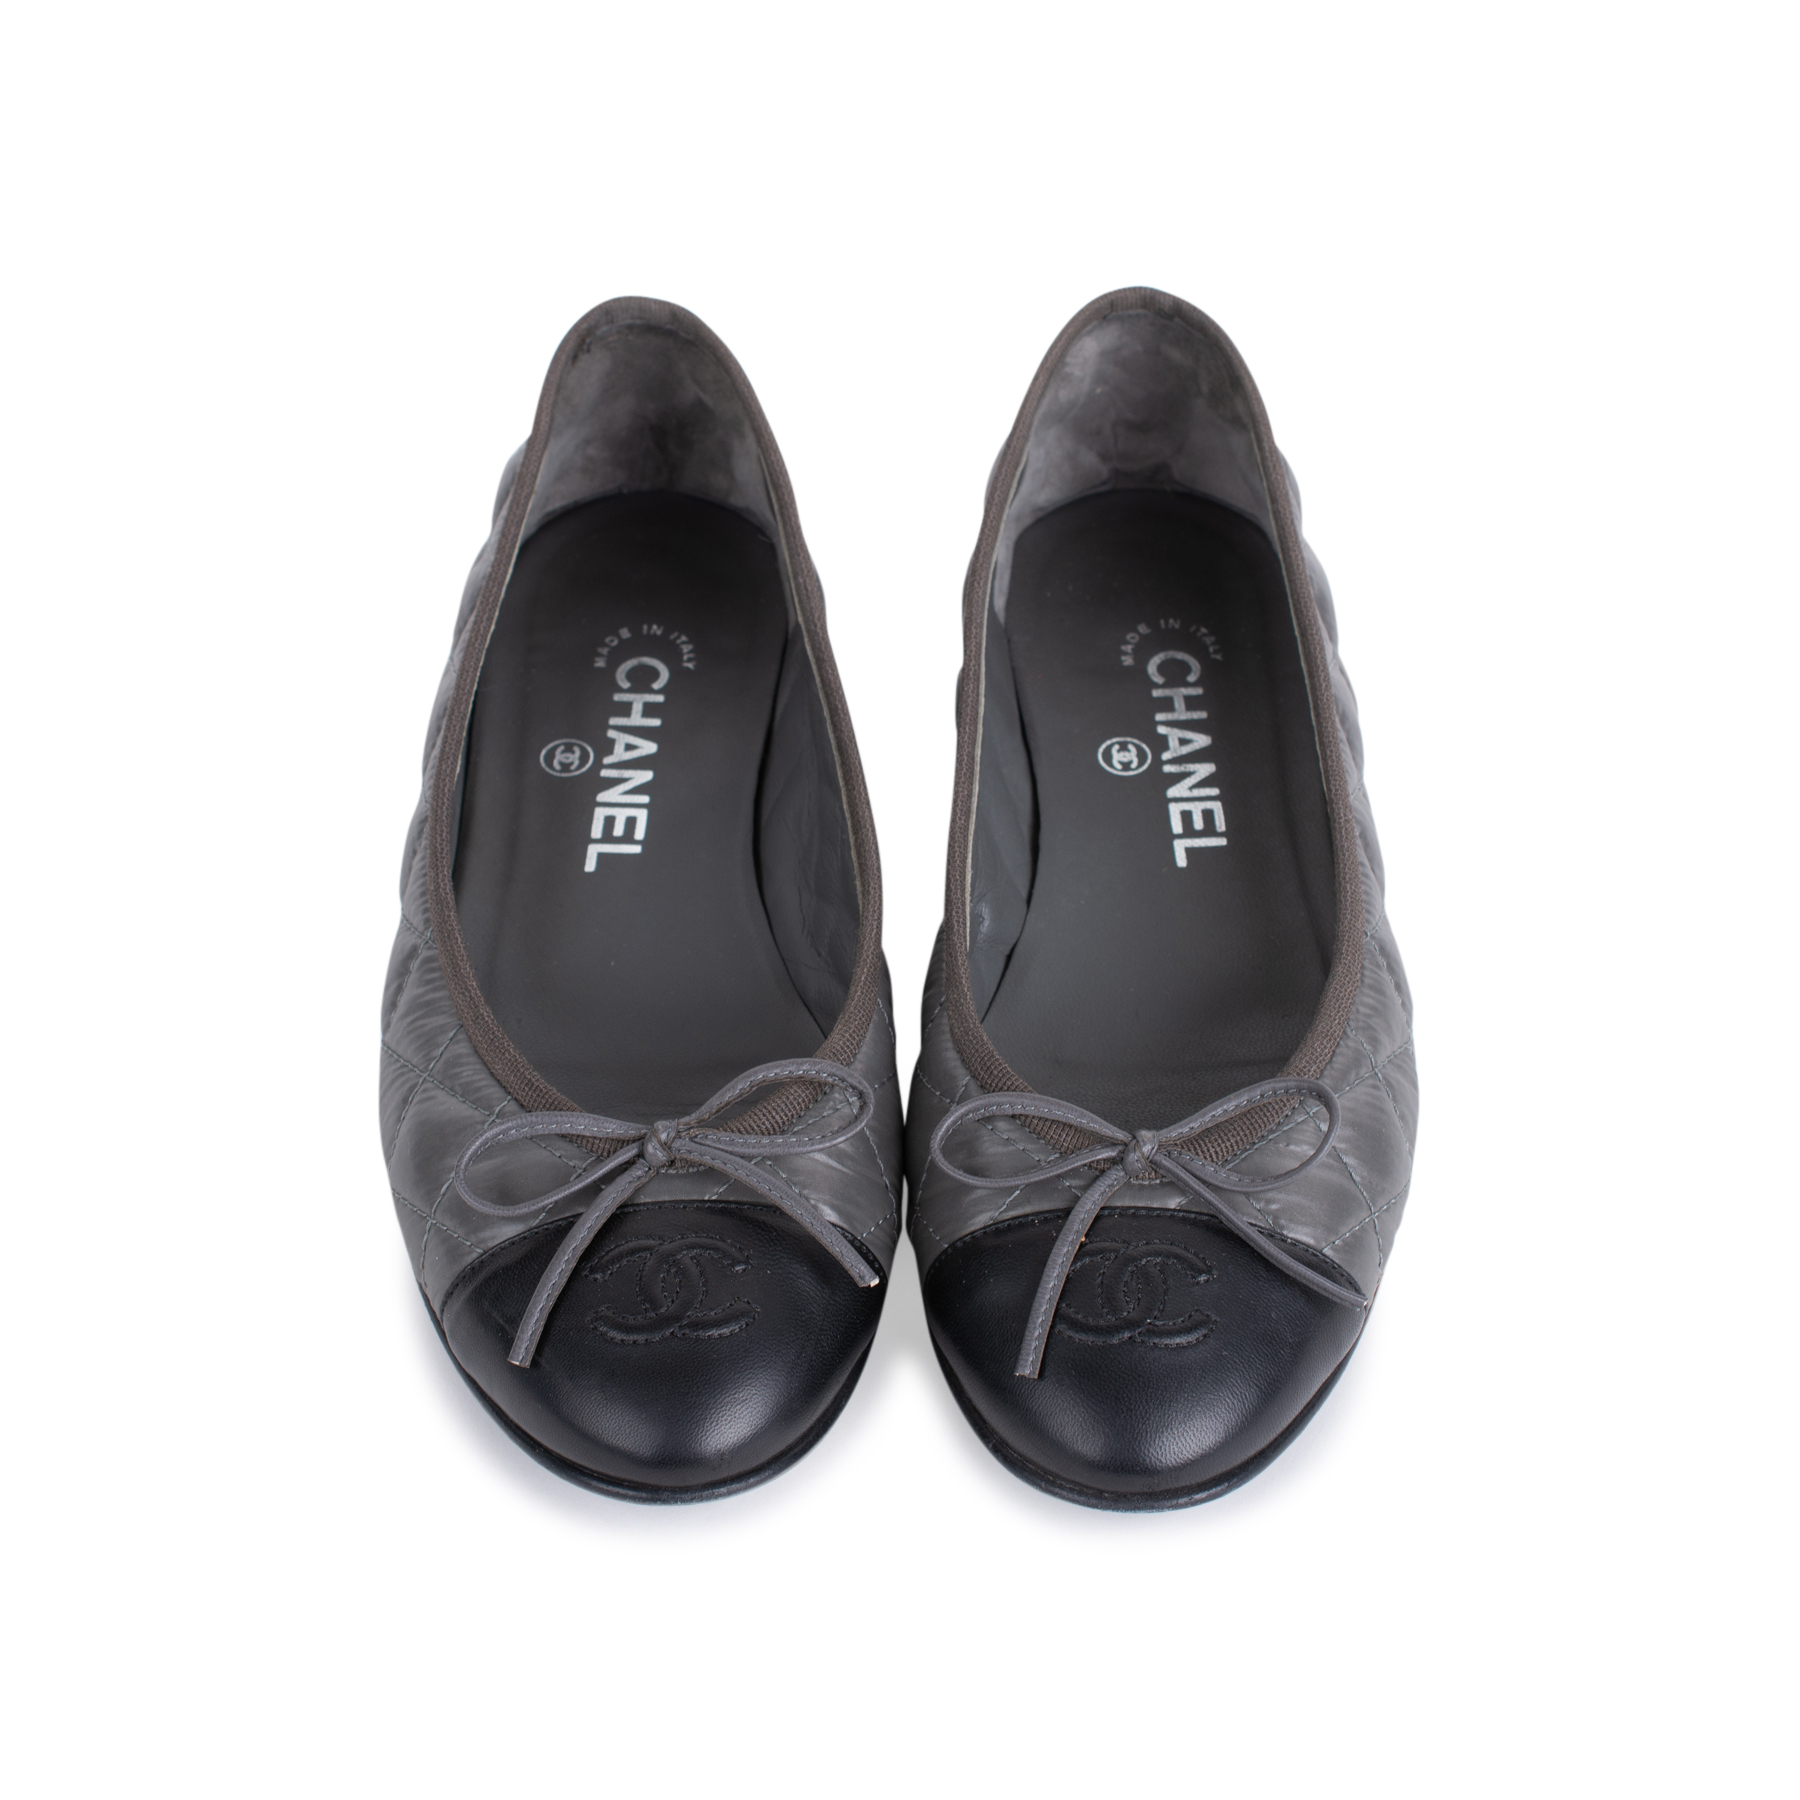 62e9b60994b Authentic Second Hand Chanel Nylon Quilted Ballerina Flats Pss 544.  Prevnext. Chanel Black Quilted Leather ...